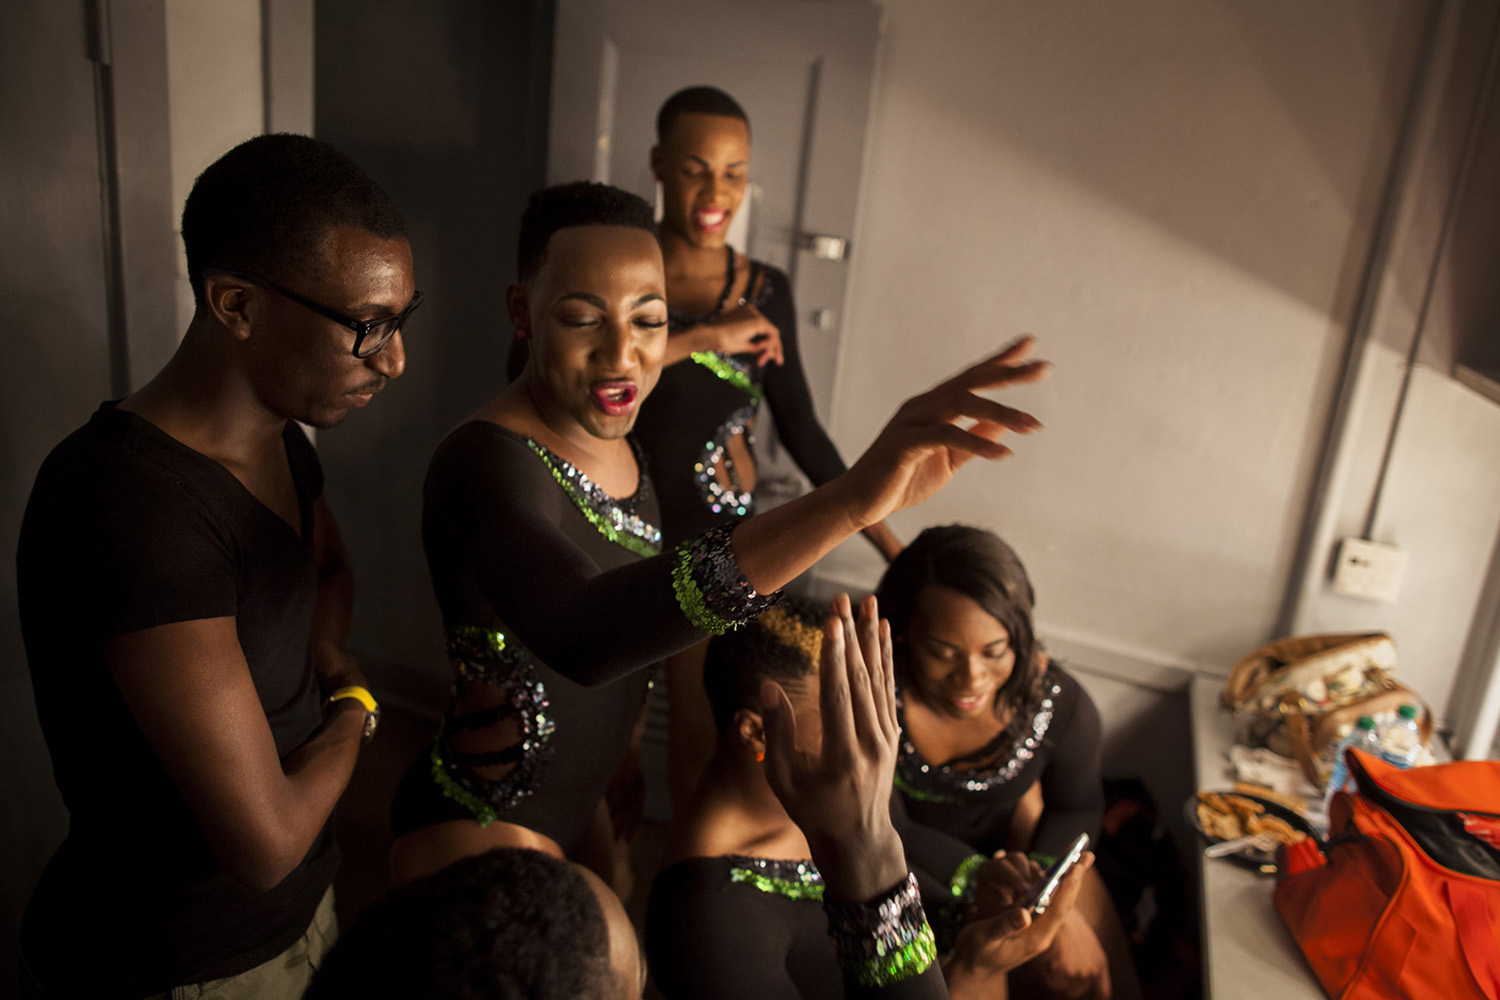 Members of the Prancing Elites and their friends watch videos of their performance at the Saenger Theater in Mobile, Ala.